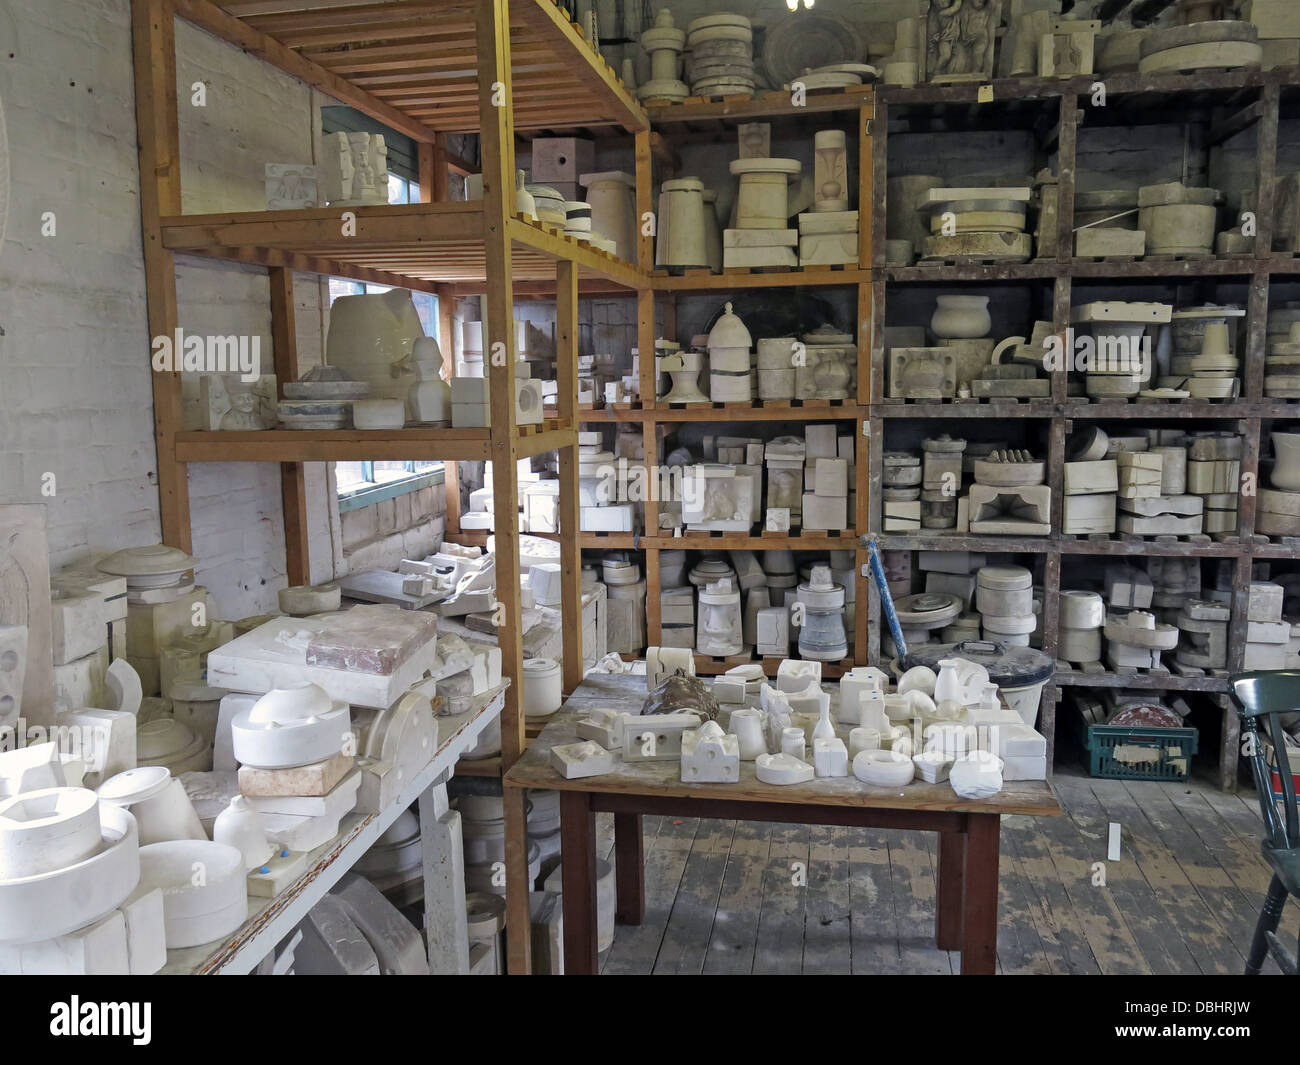 Pottery mouldroom Longton Stoke-On-Trent Great Britain showing potteries heritage at the Gladstone Pottery Museum - Stock Image